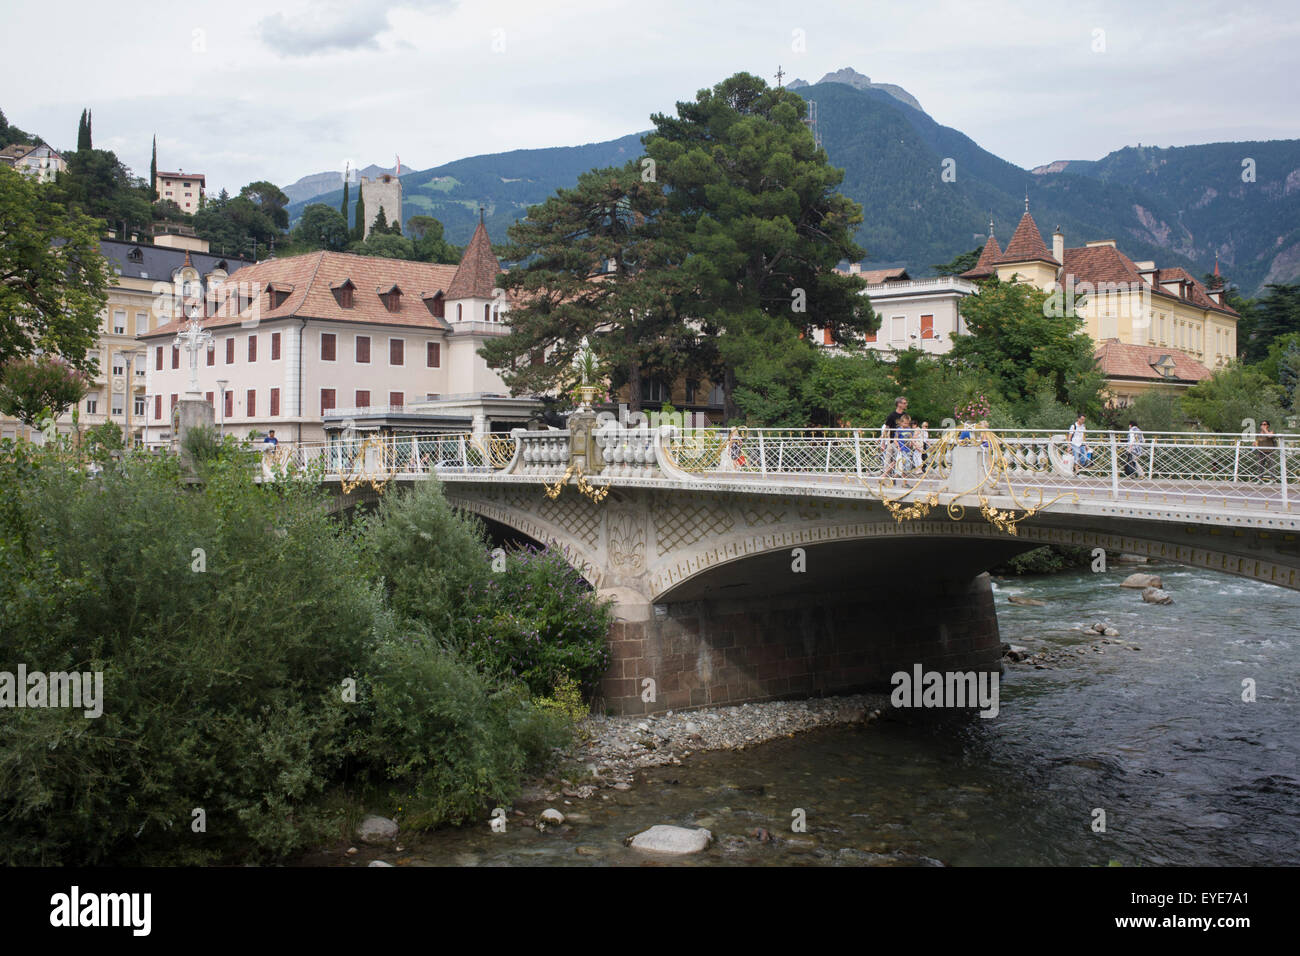 Ponte della Posta (Bridge) over the Passer River, in the South Tyrolean town of Meran-Merano, best known for its - Stock Image